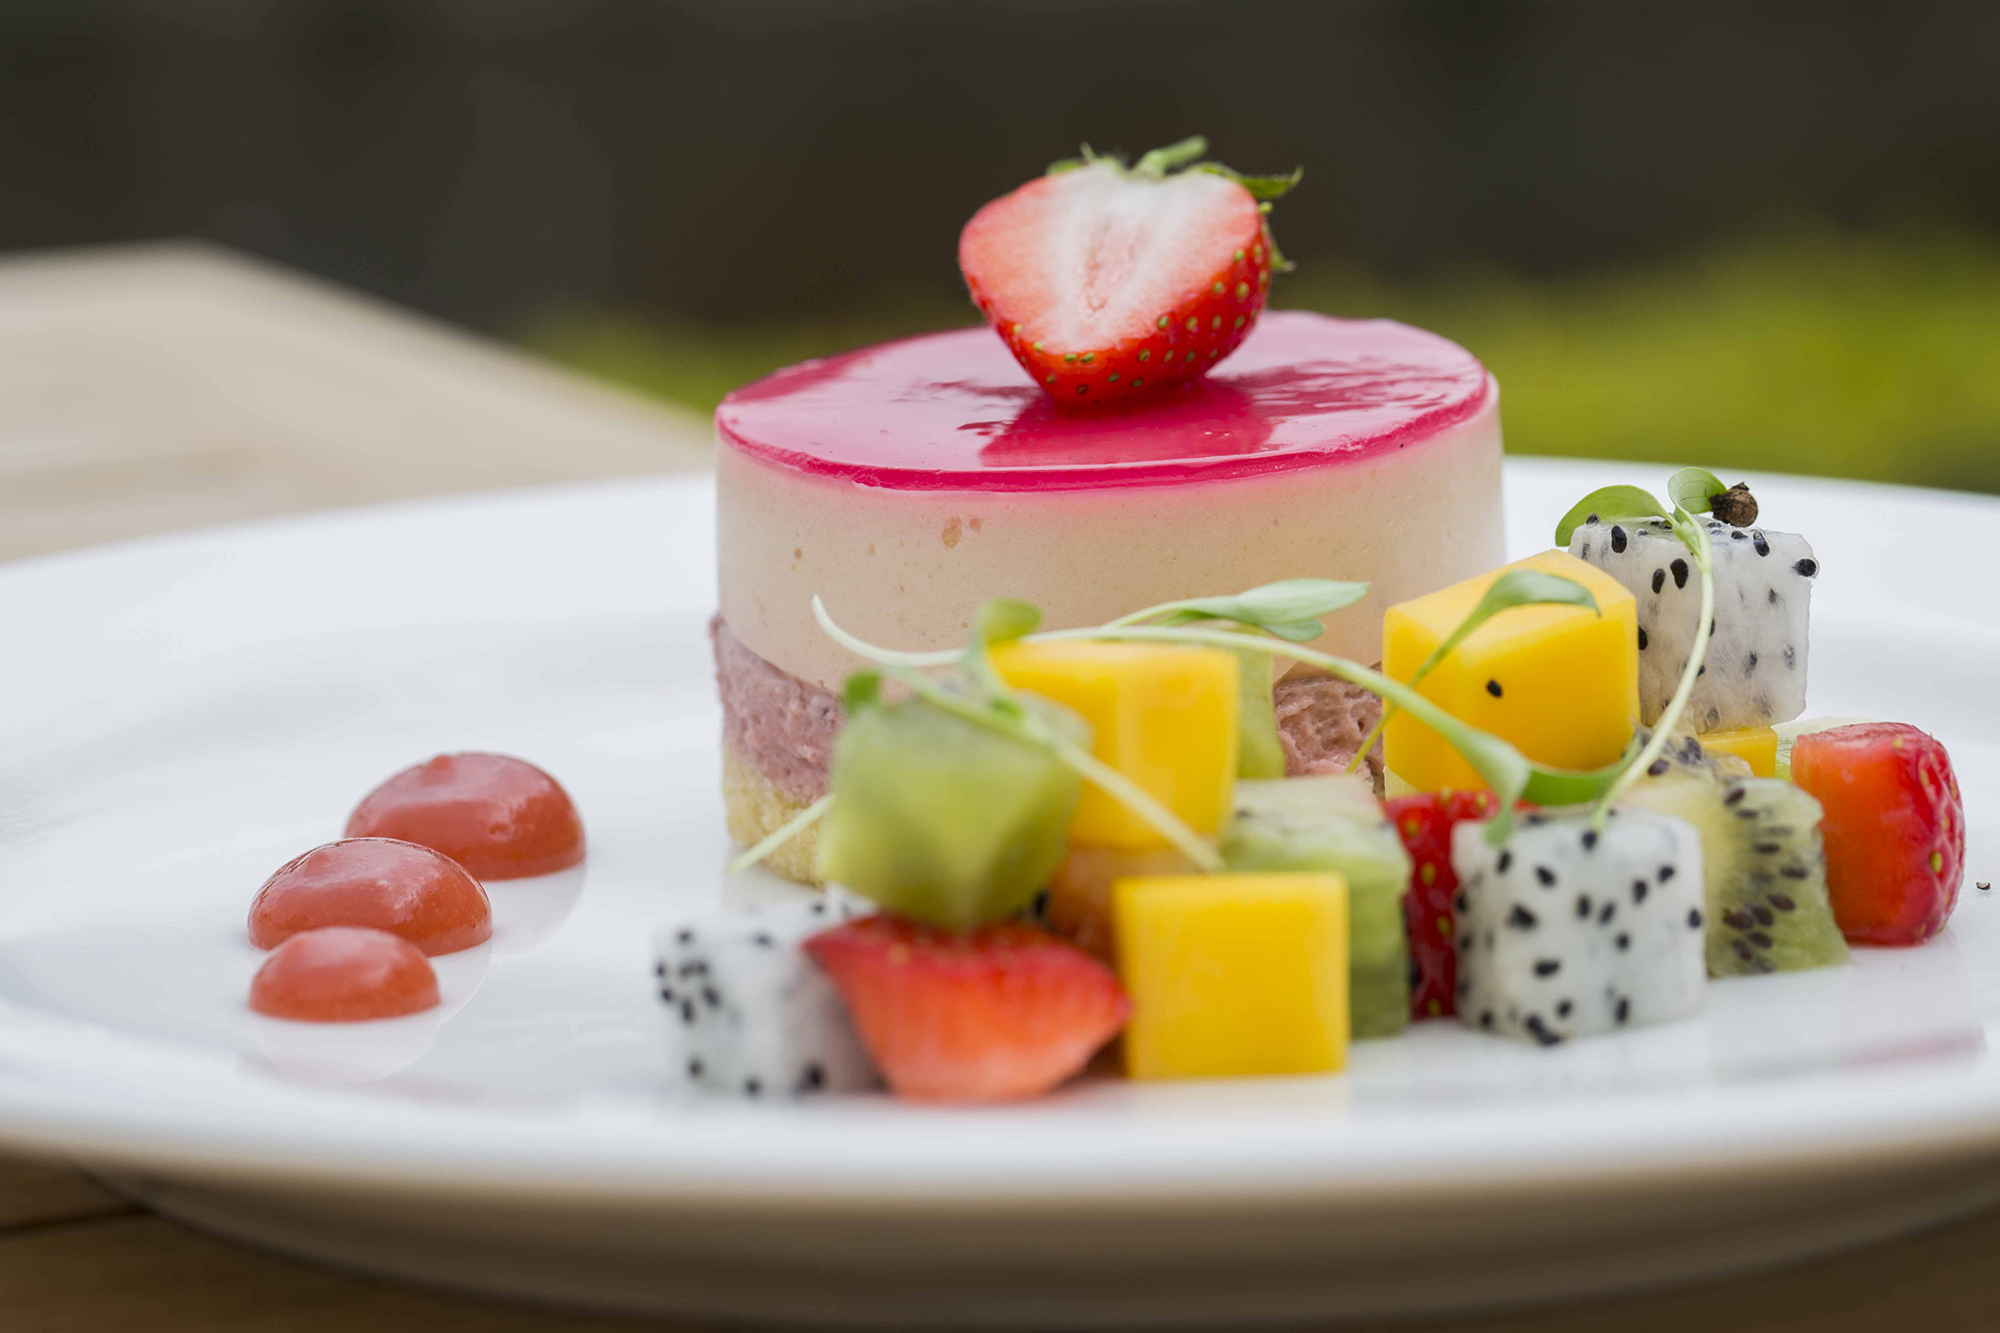 Close up of an intricate, appetising, colourful desert served at Hengrave Hall, Bury St Edmunds, Suffolk